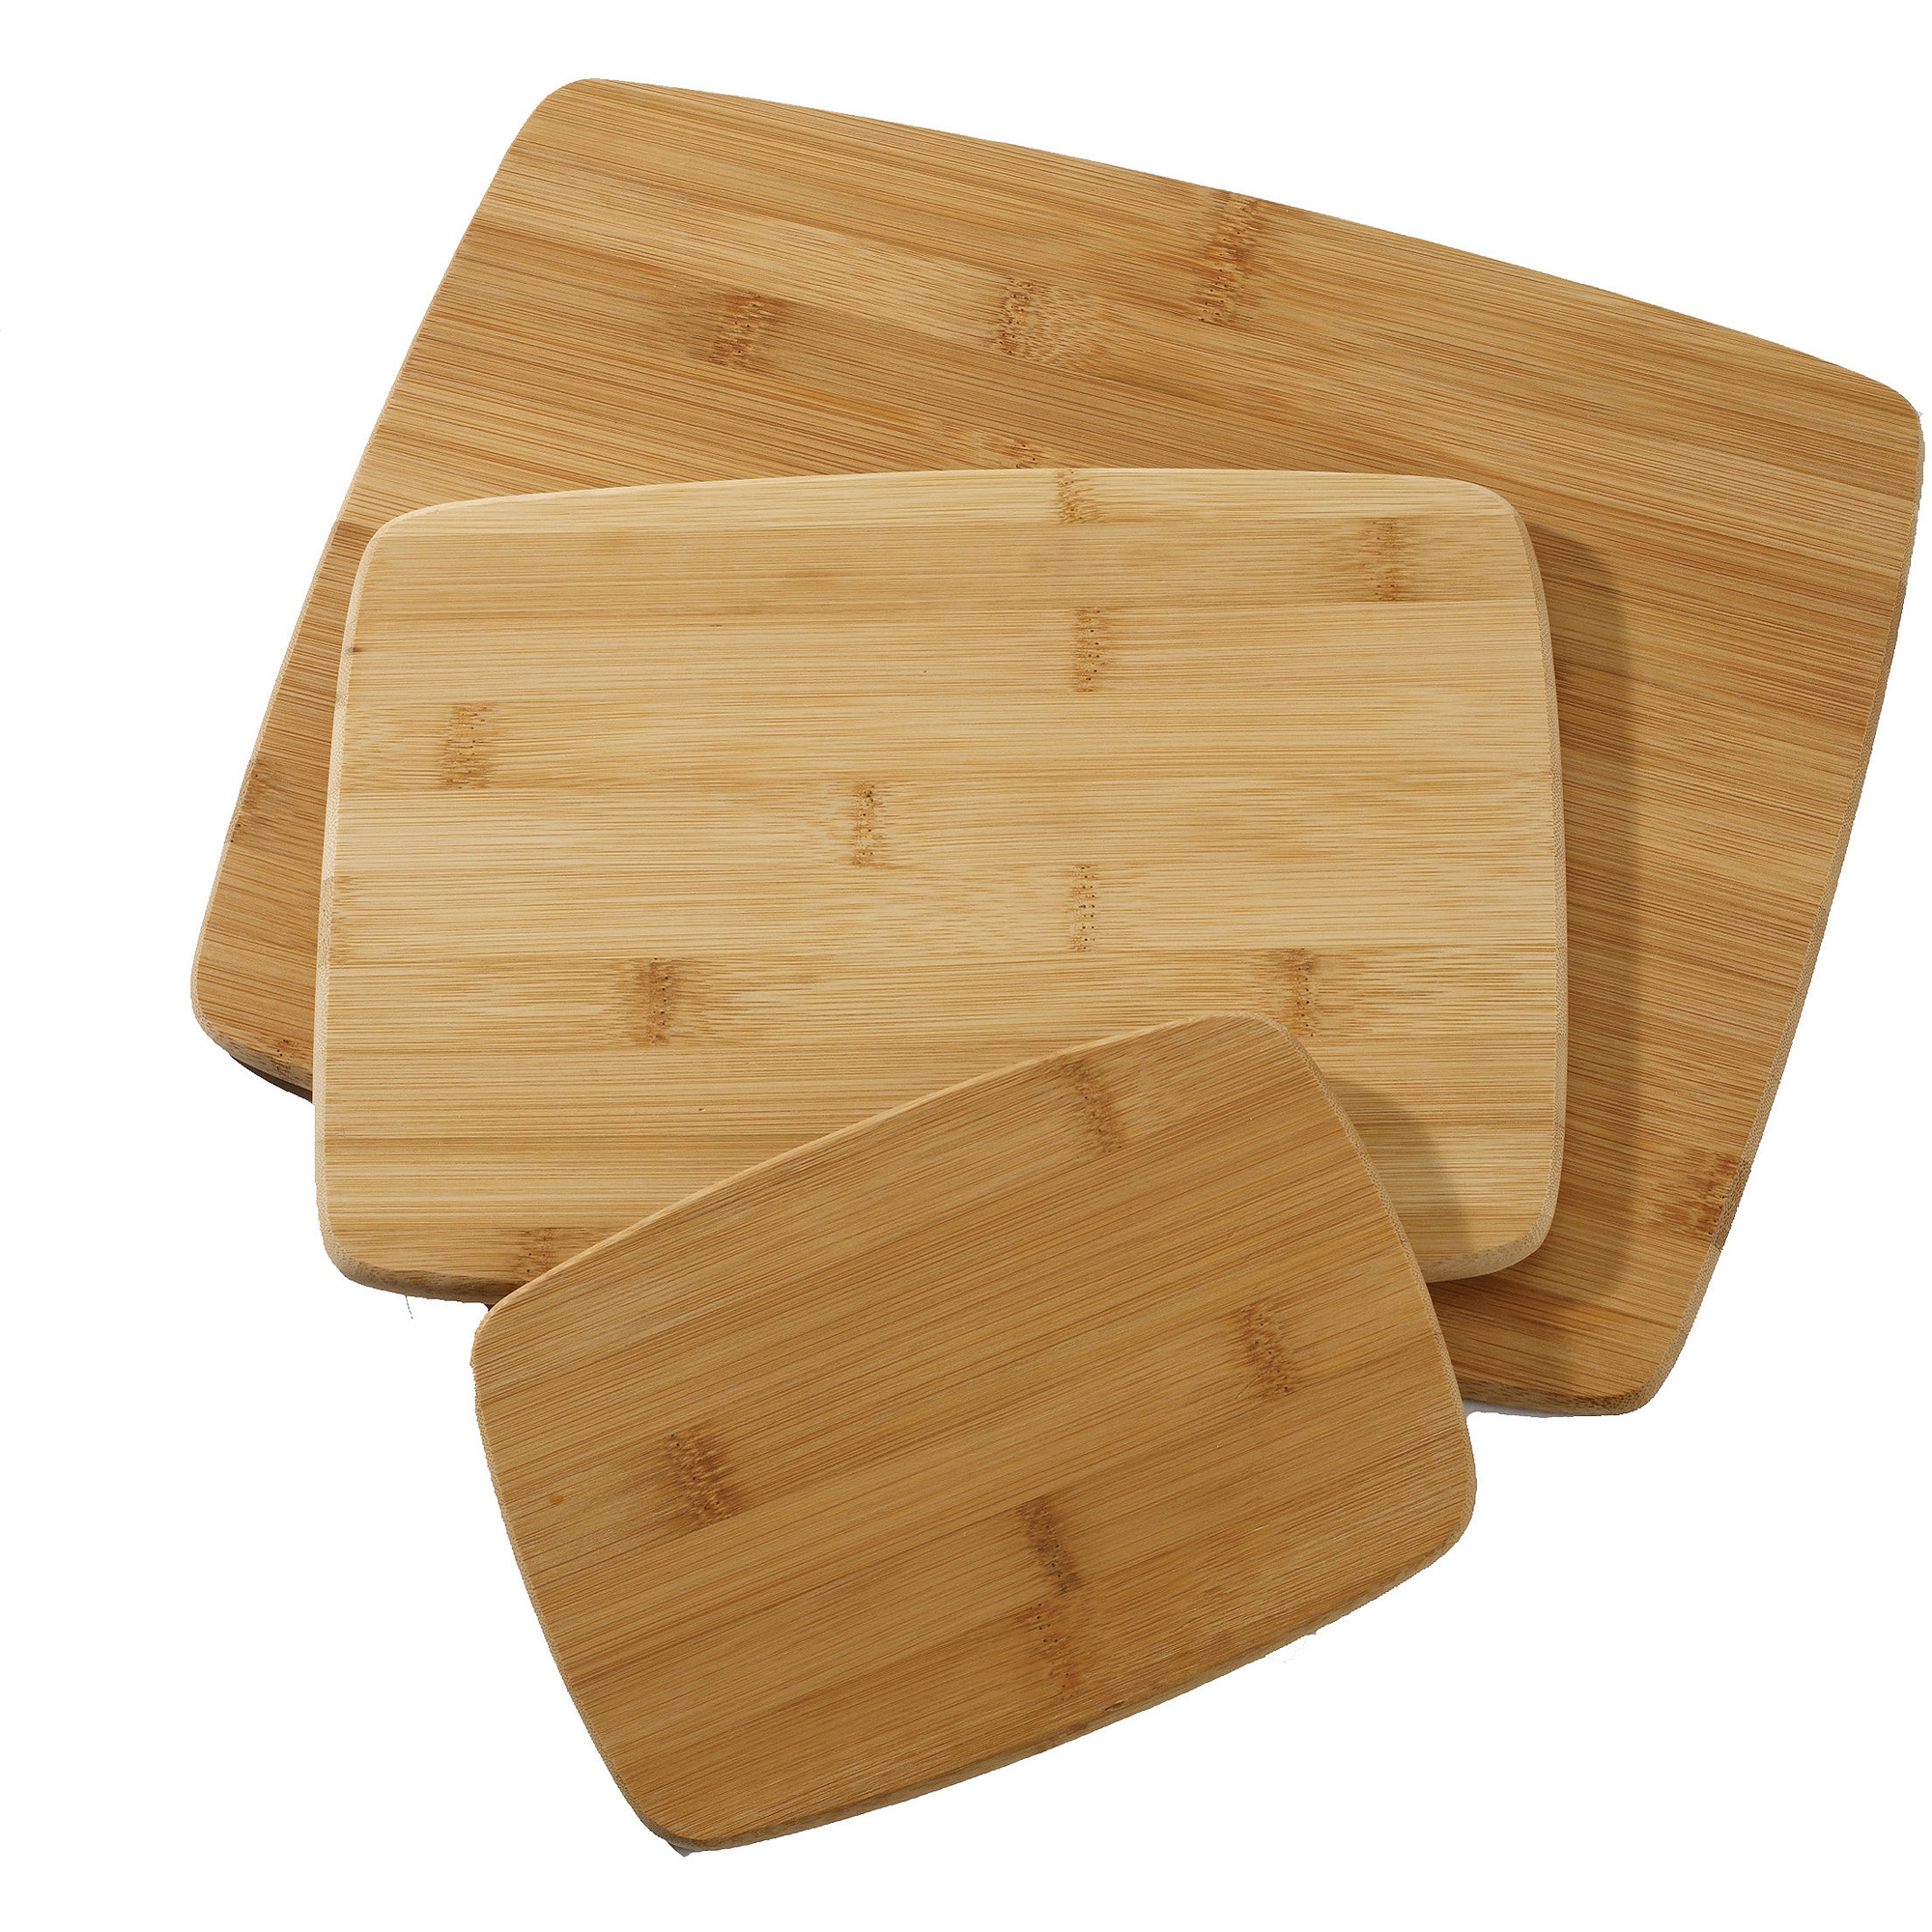 "Farberware Classic 3-Piece Bamboo Cutting Board Set, 11"" x 14"", 8"" x 10"" and 8"" x 5"""